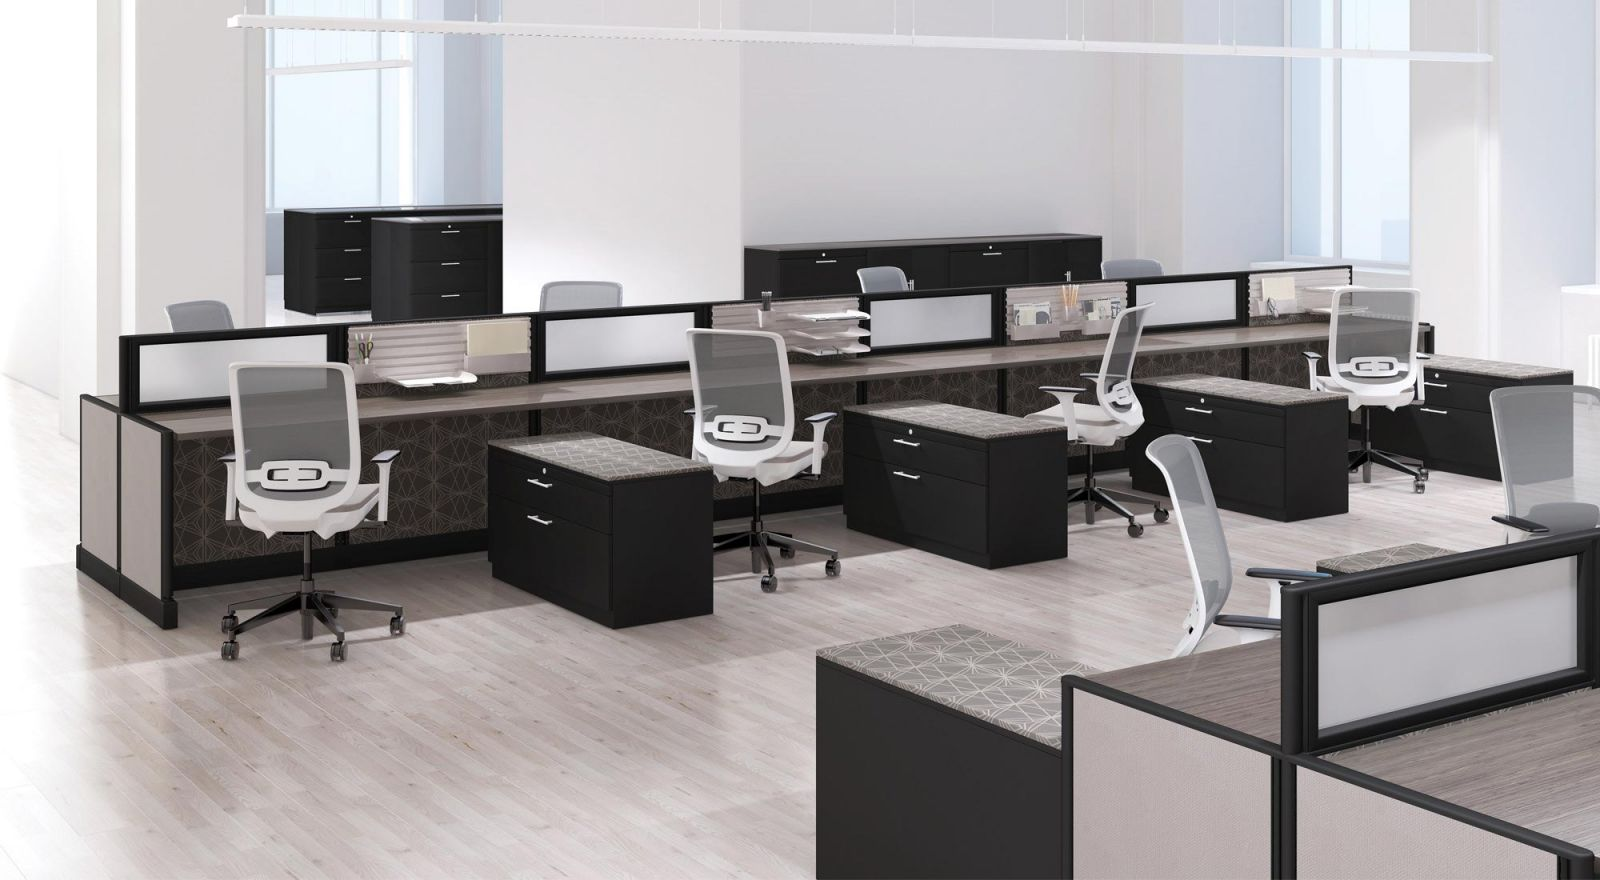 Knoll Cubicles as Benching